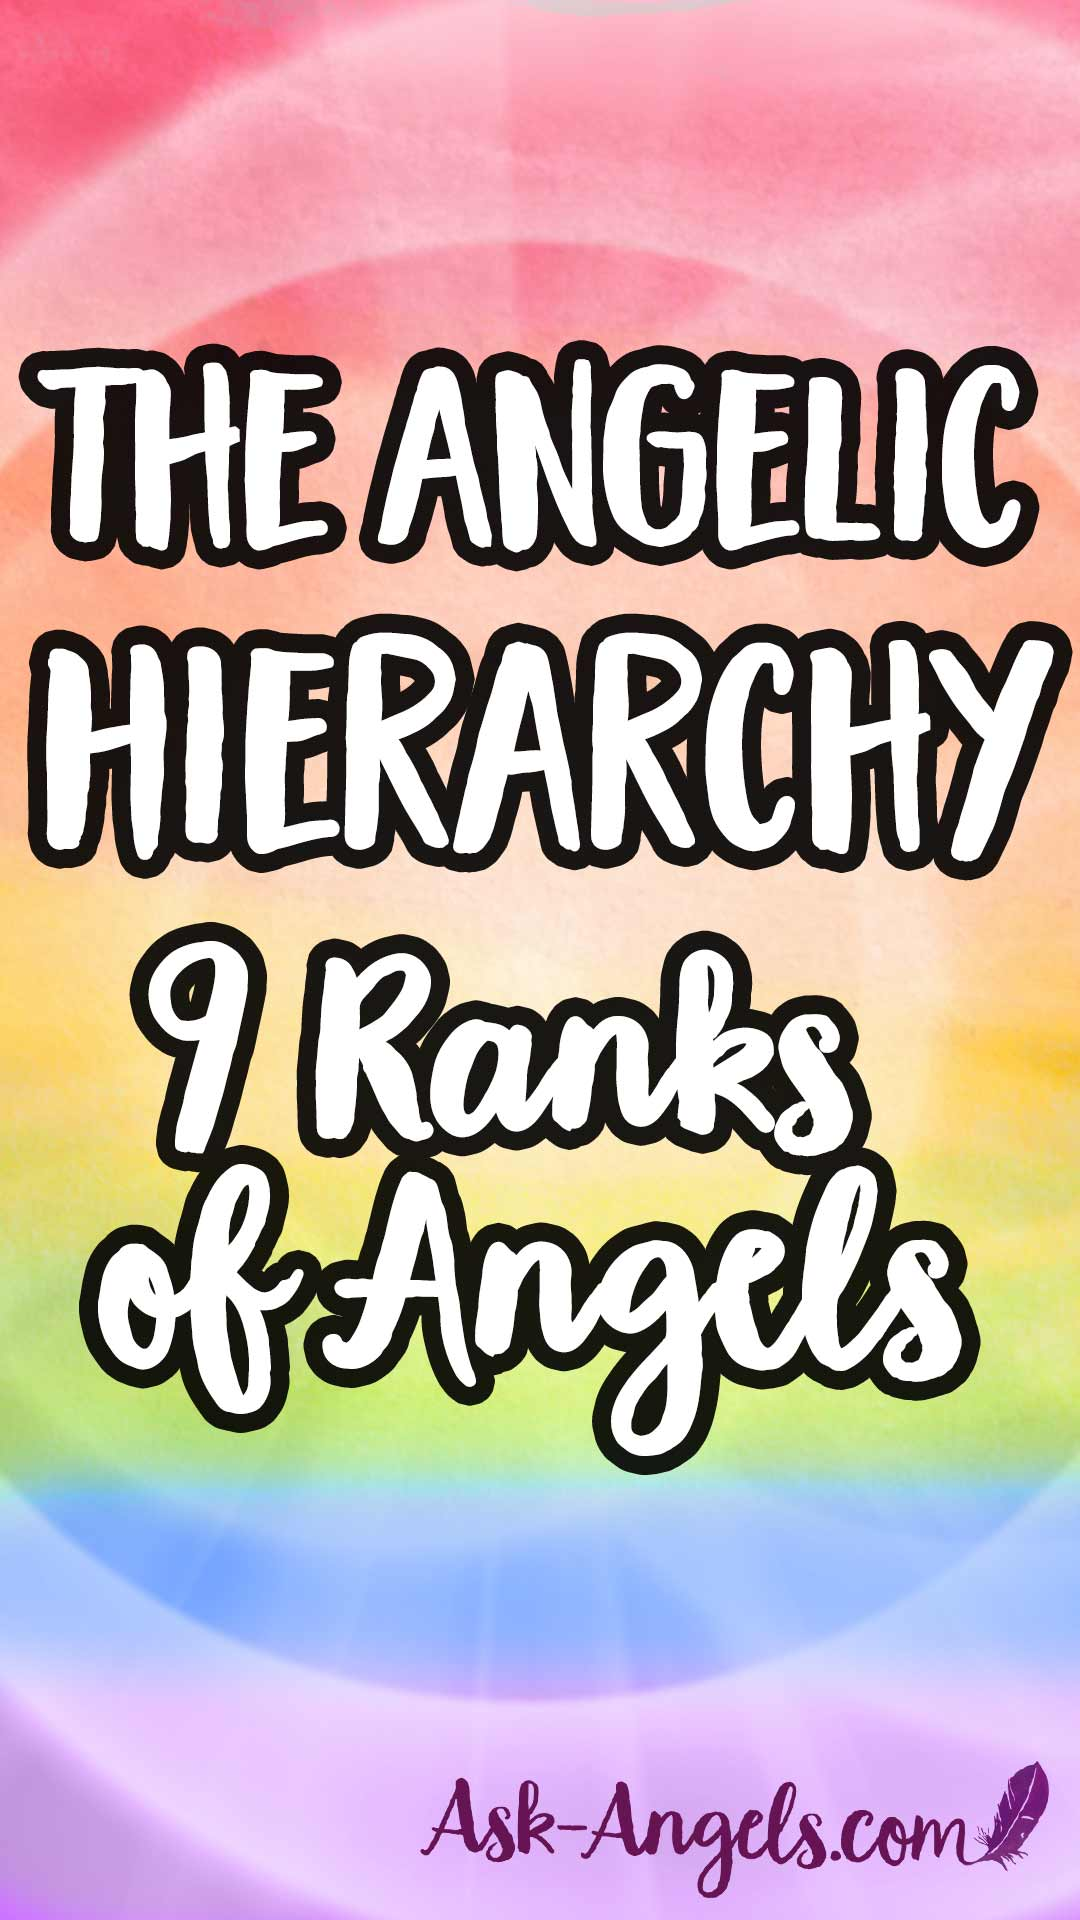 The Angelic Hierarchy... 9 Angel Ranks